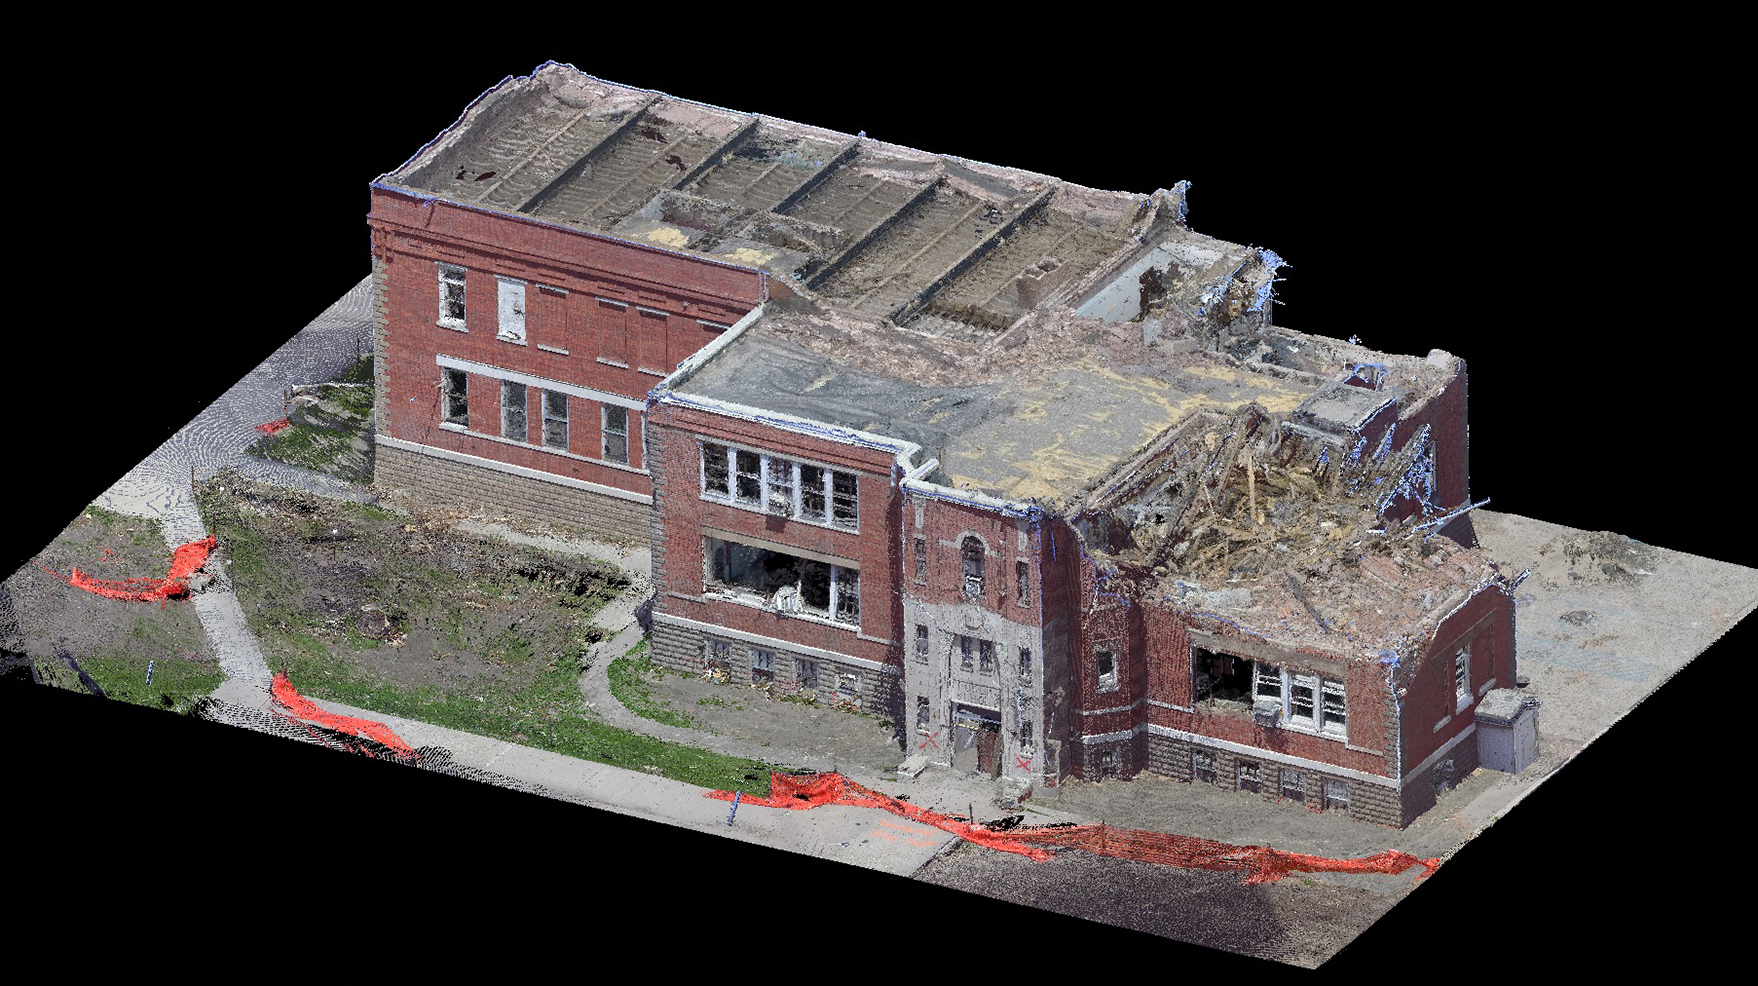 Engineers study how Pilger tornado destroyed buildings